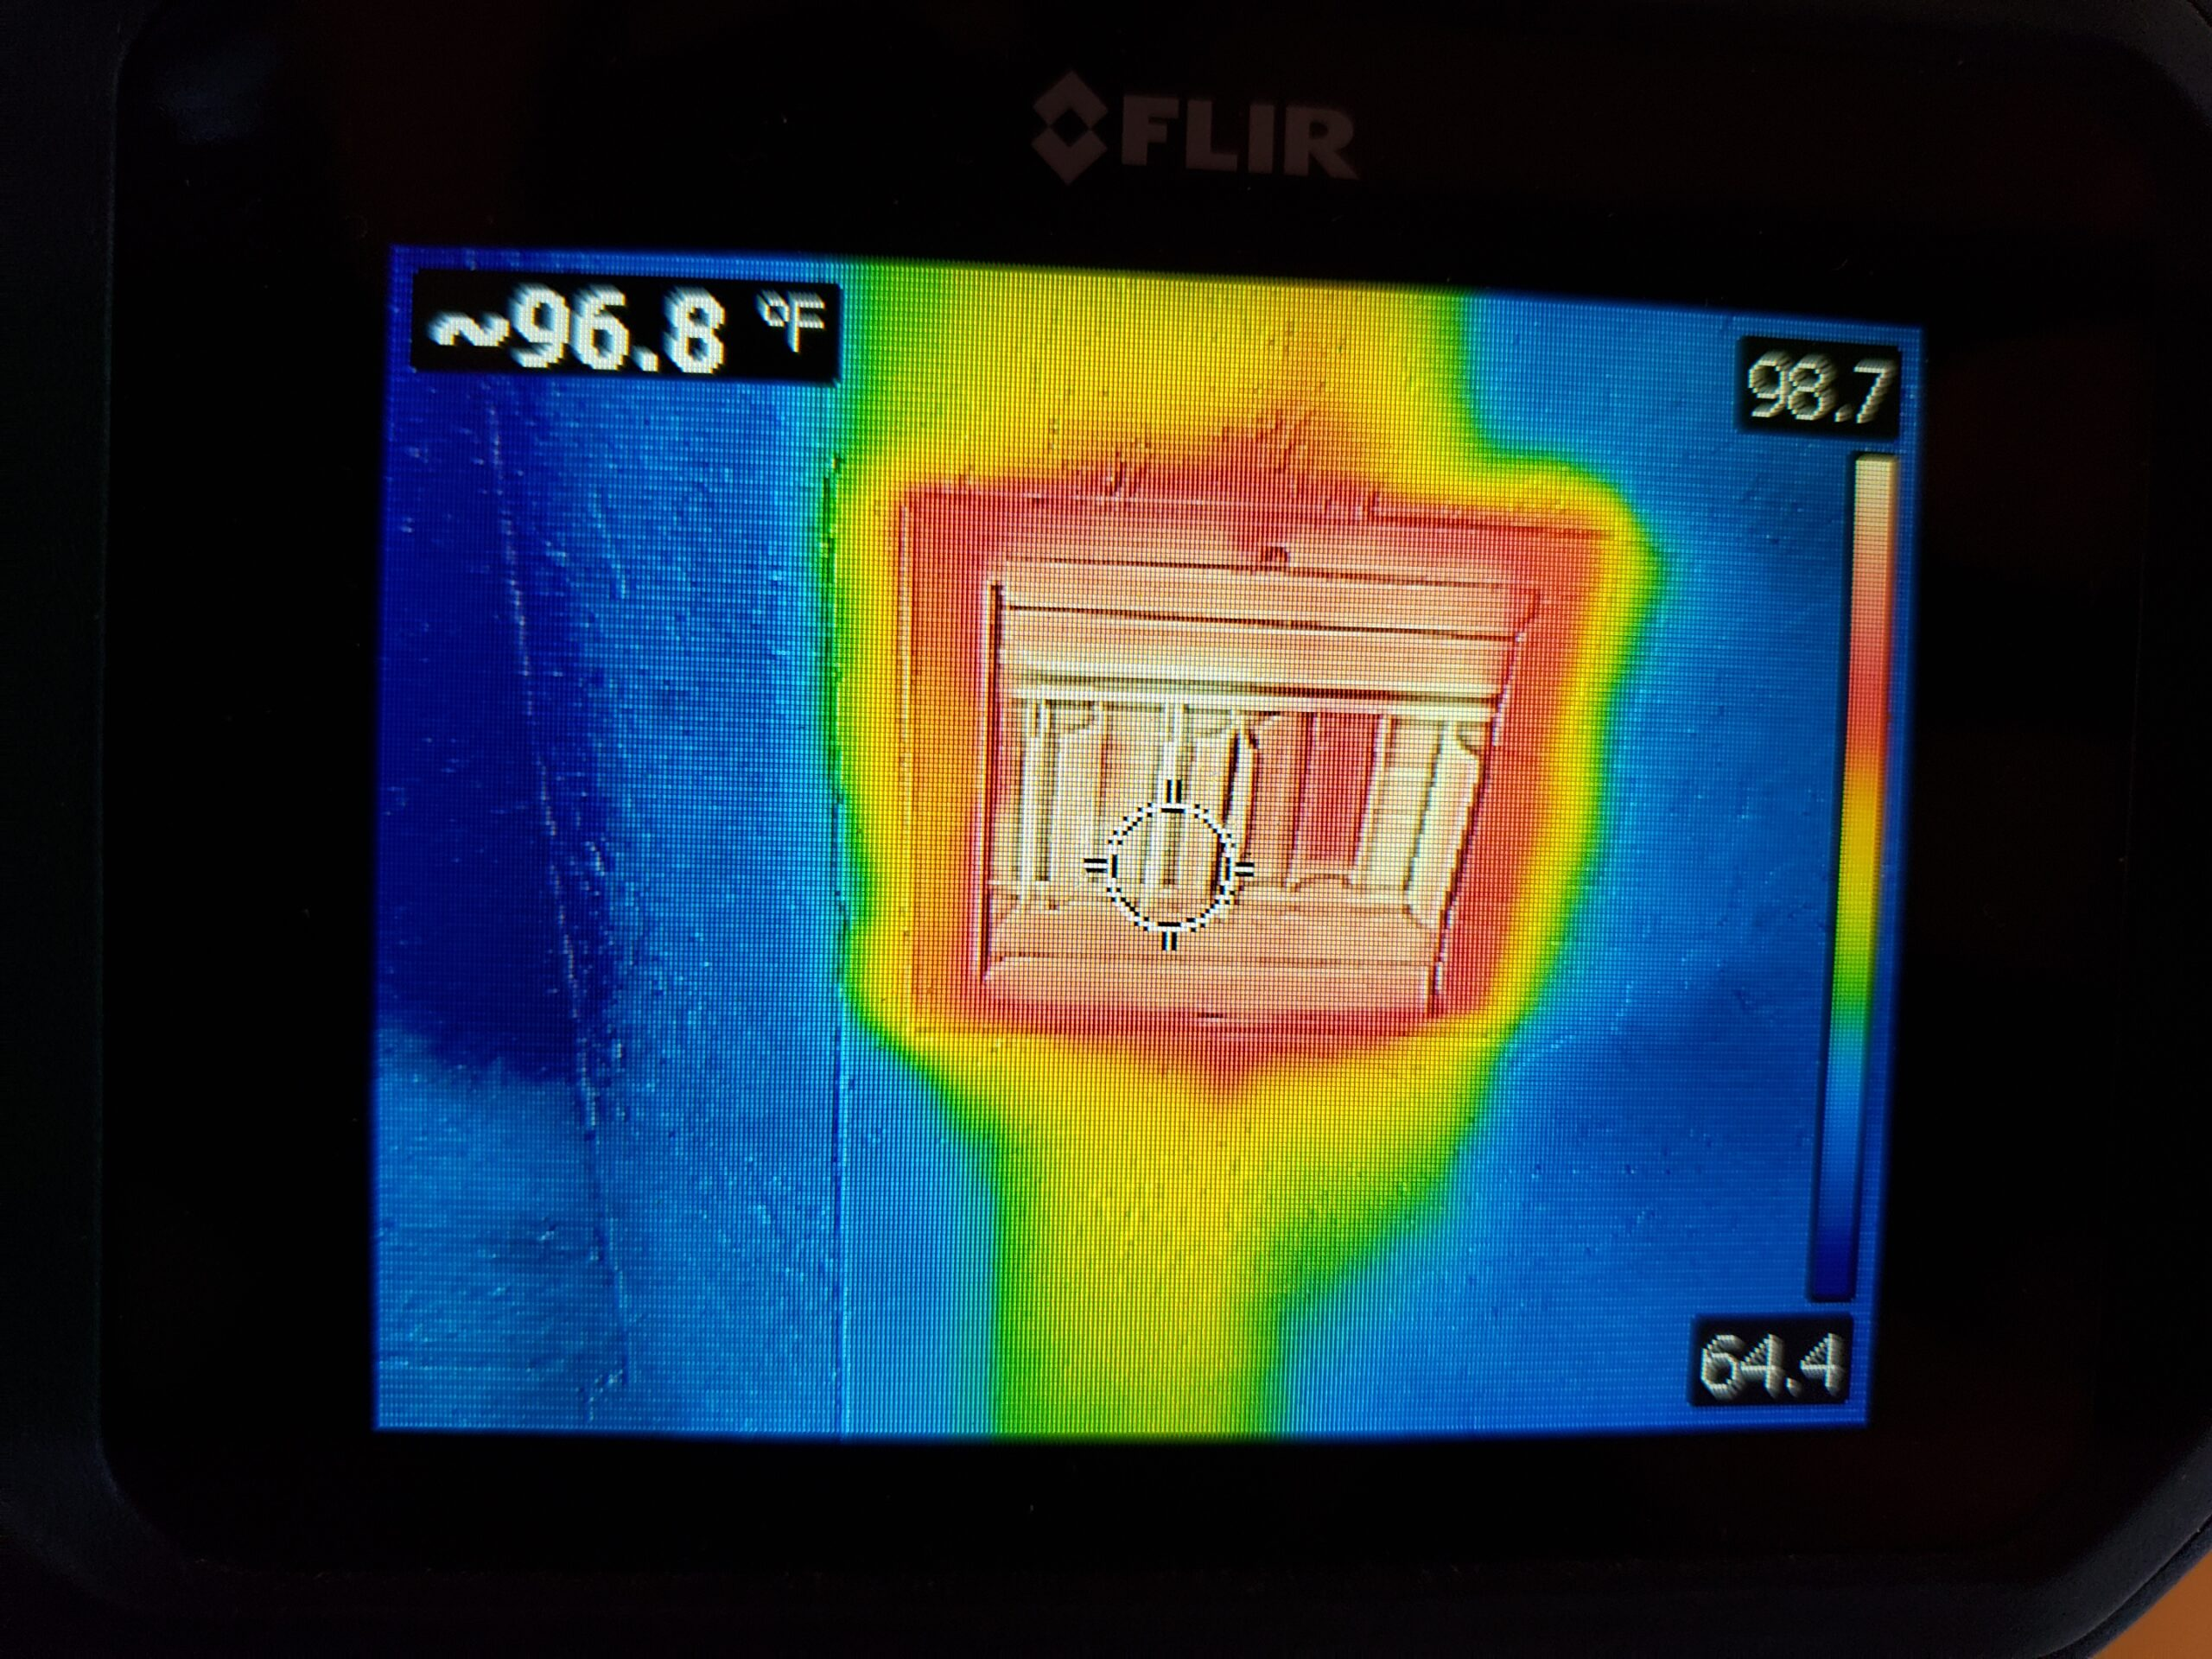 Infrared gives a visual of the home heating system